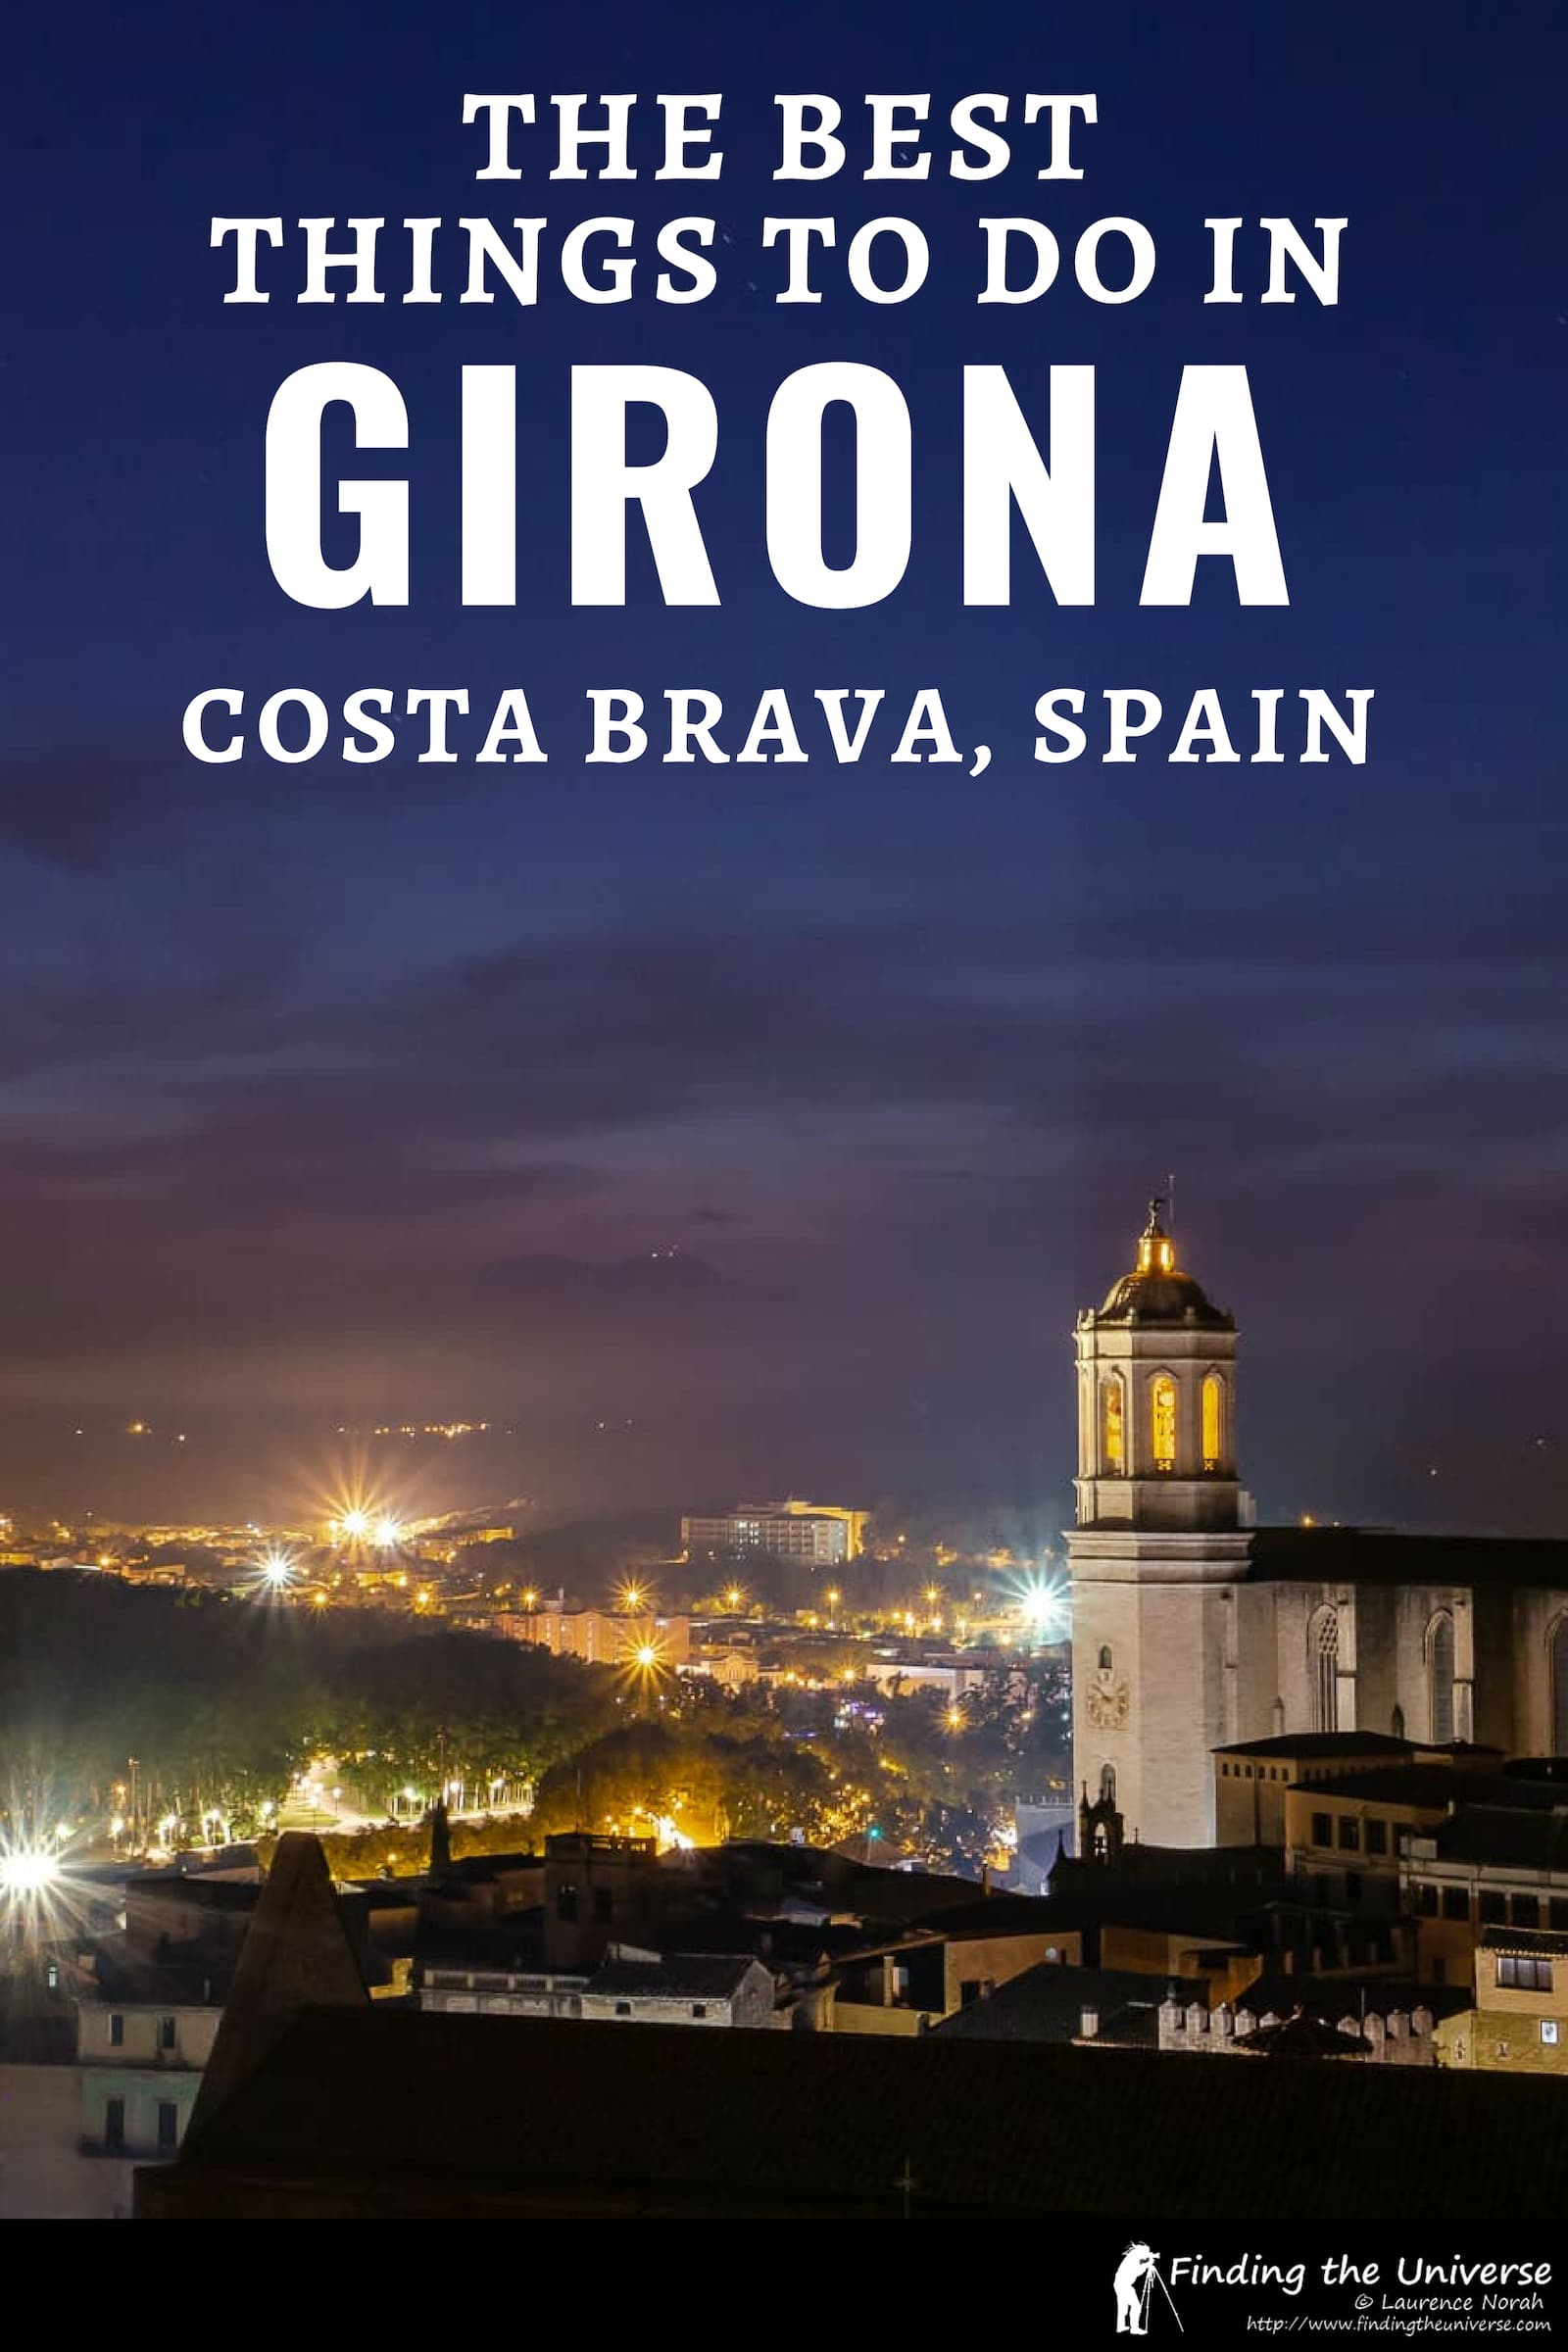 A detailed guide to things to do in Girona, Spain. Has all the attractions you would want to visit either as part of a day trip or longer stay, plus lots more planning information and advice!